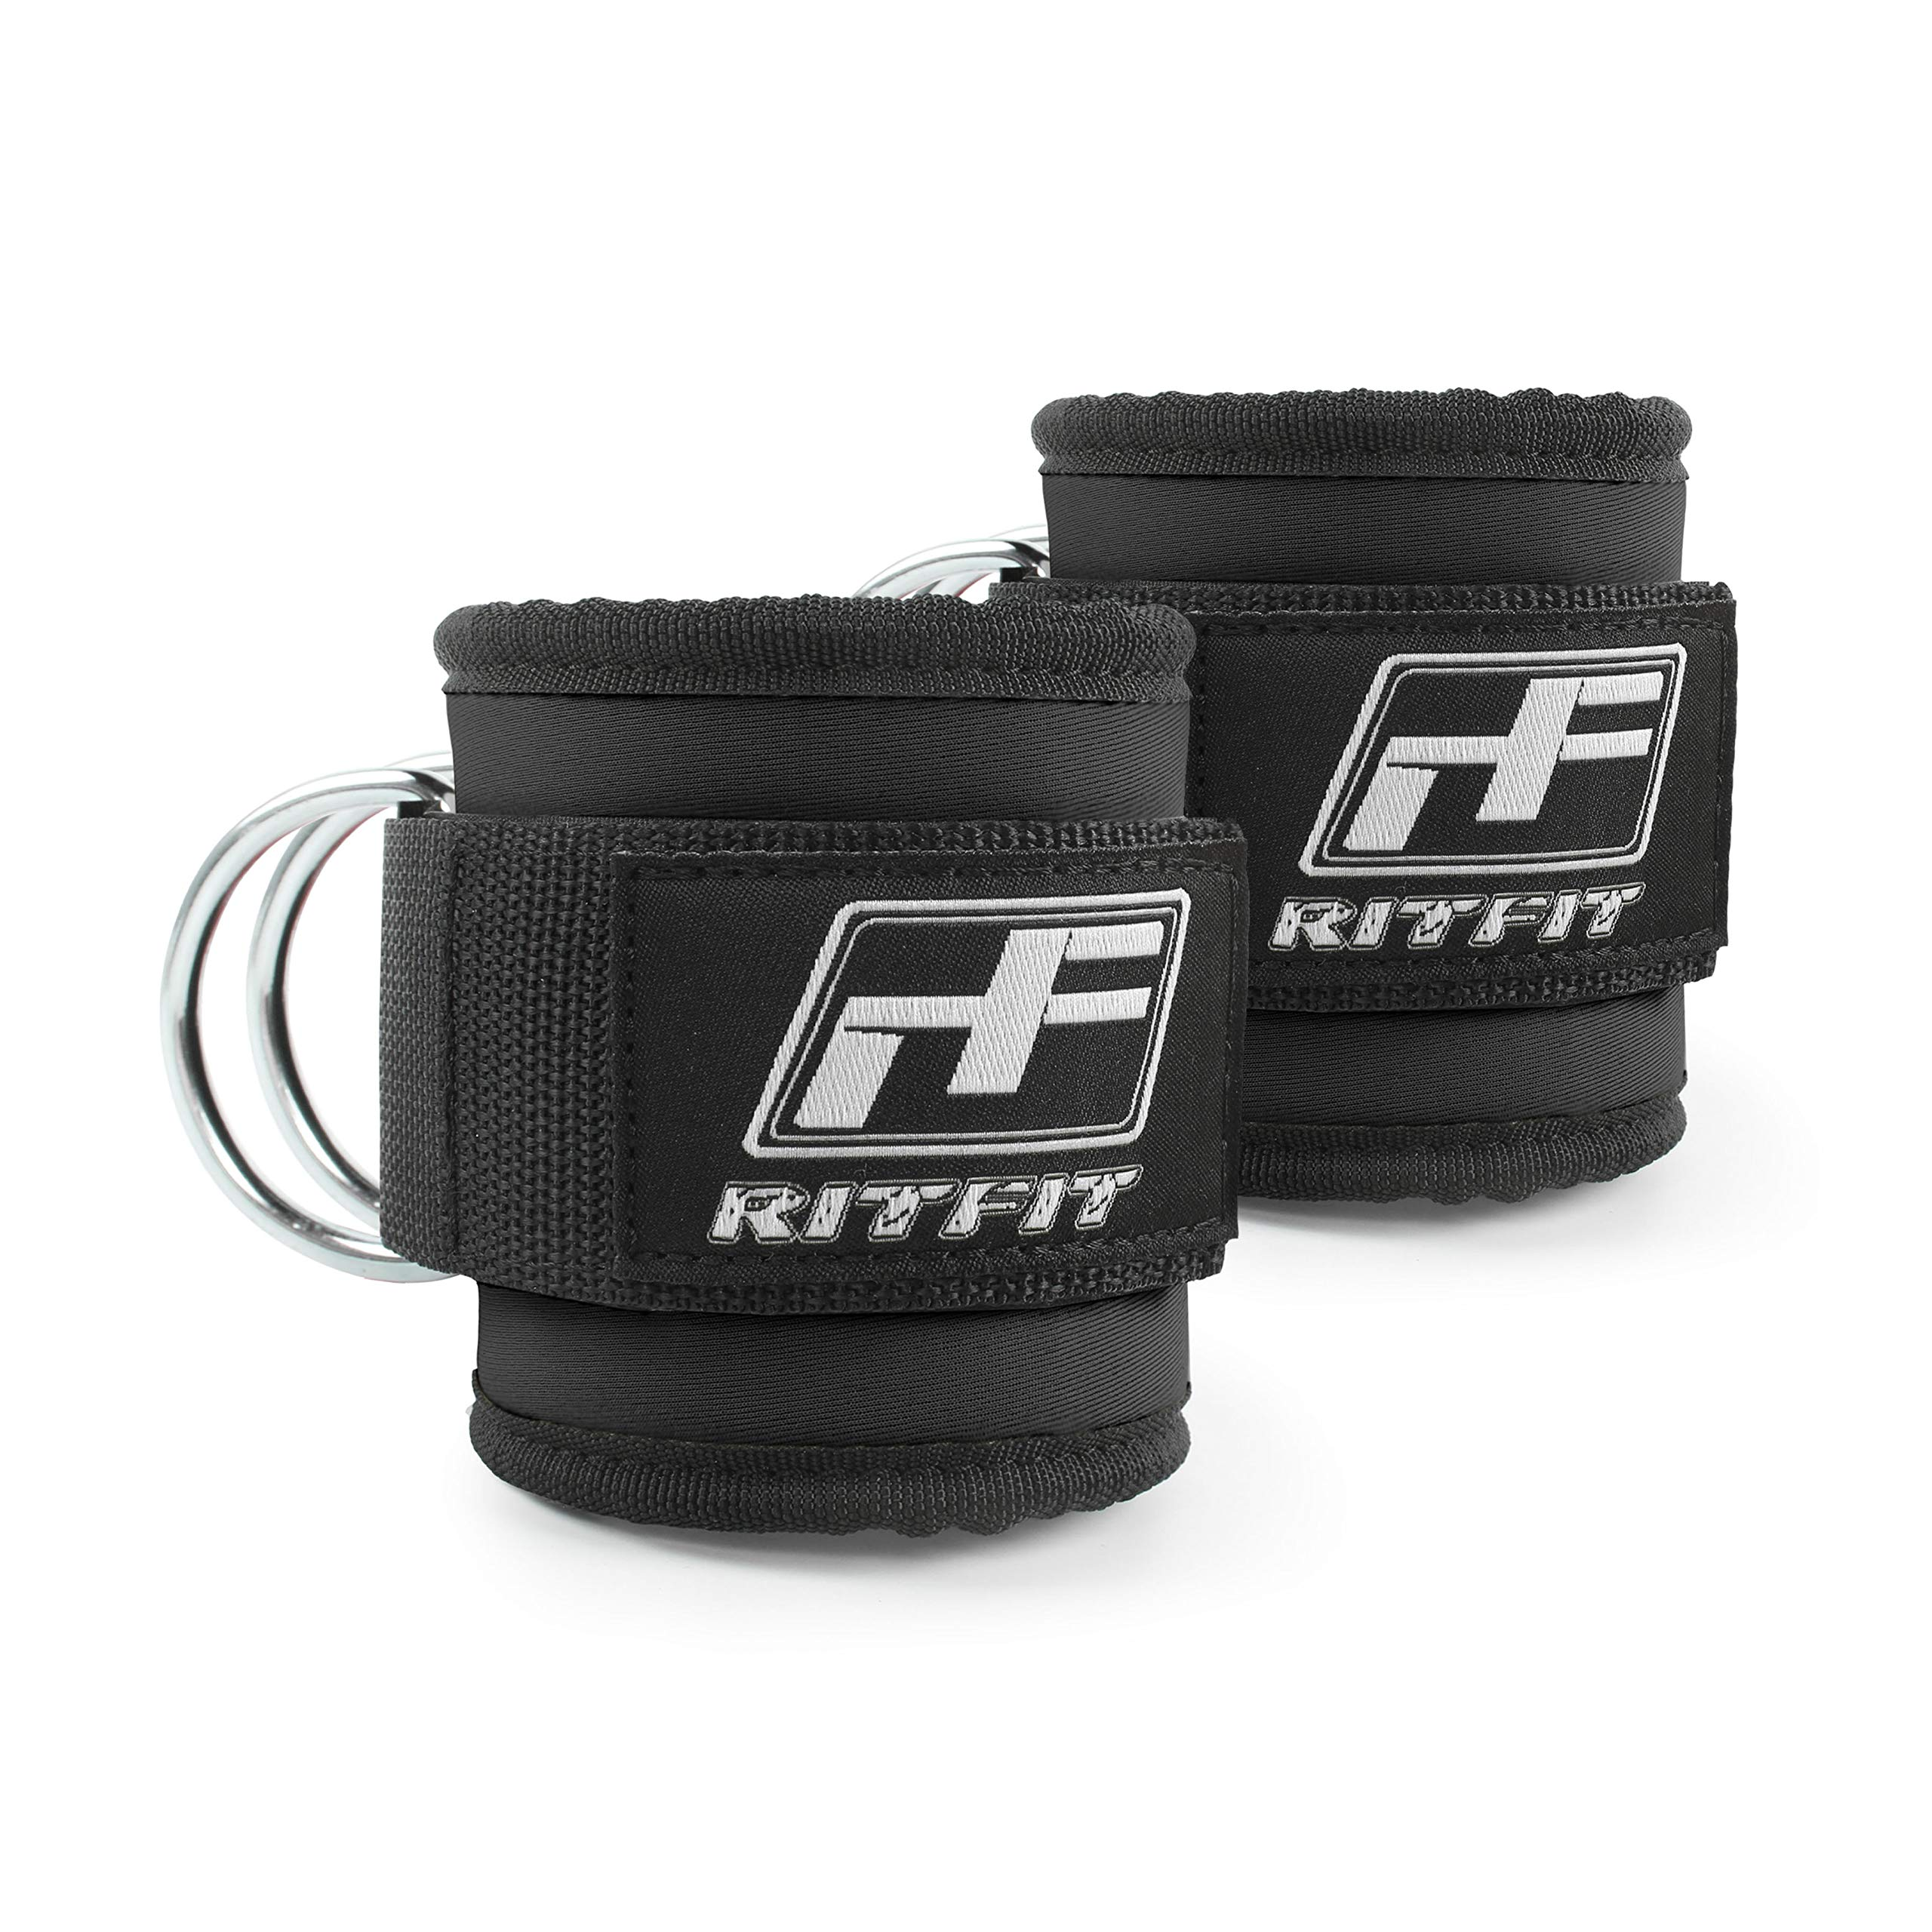 RitFit Fitness Padded Ankle Strap for Cable Machines – Reinforces Double D-Ring, Adjustable Comfort fit Neoprene, Ideal for Glute & Leg Workouts